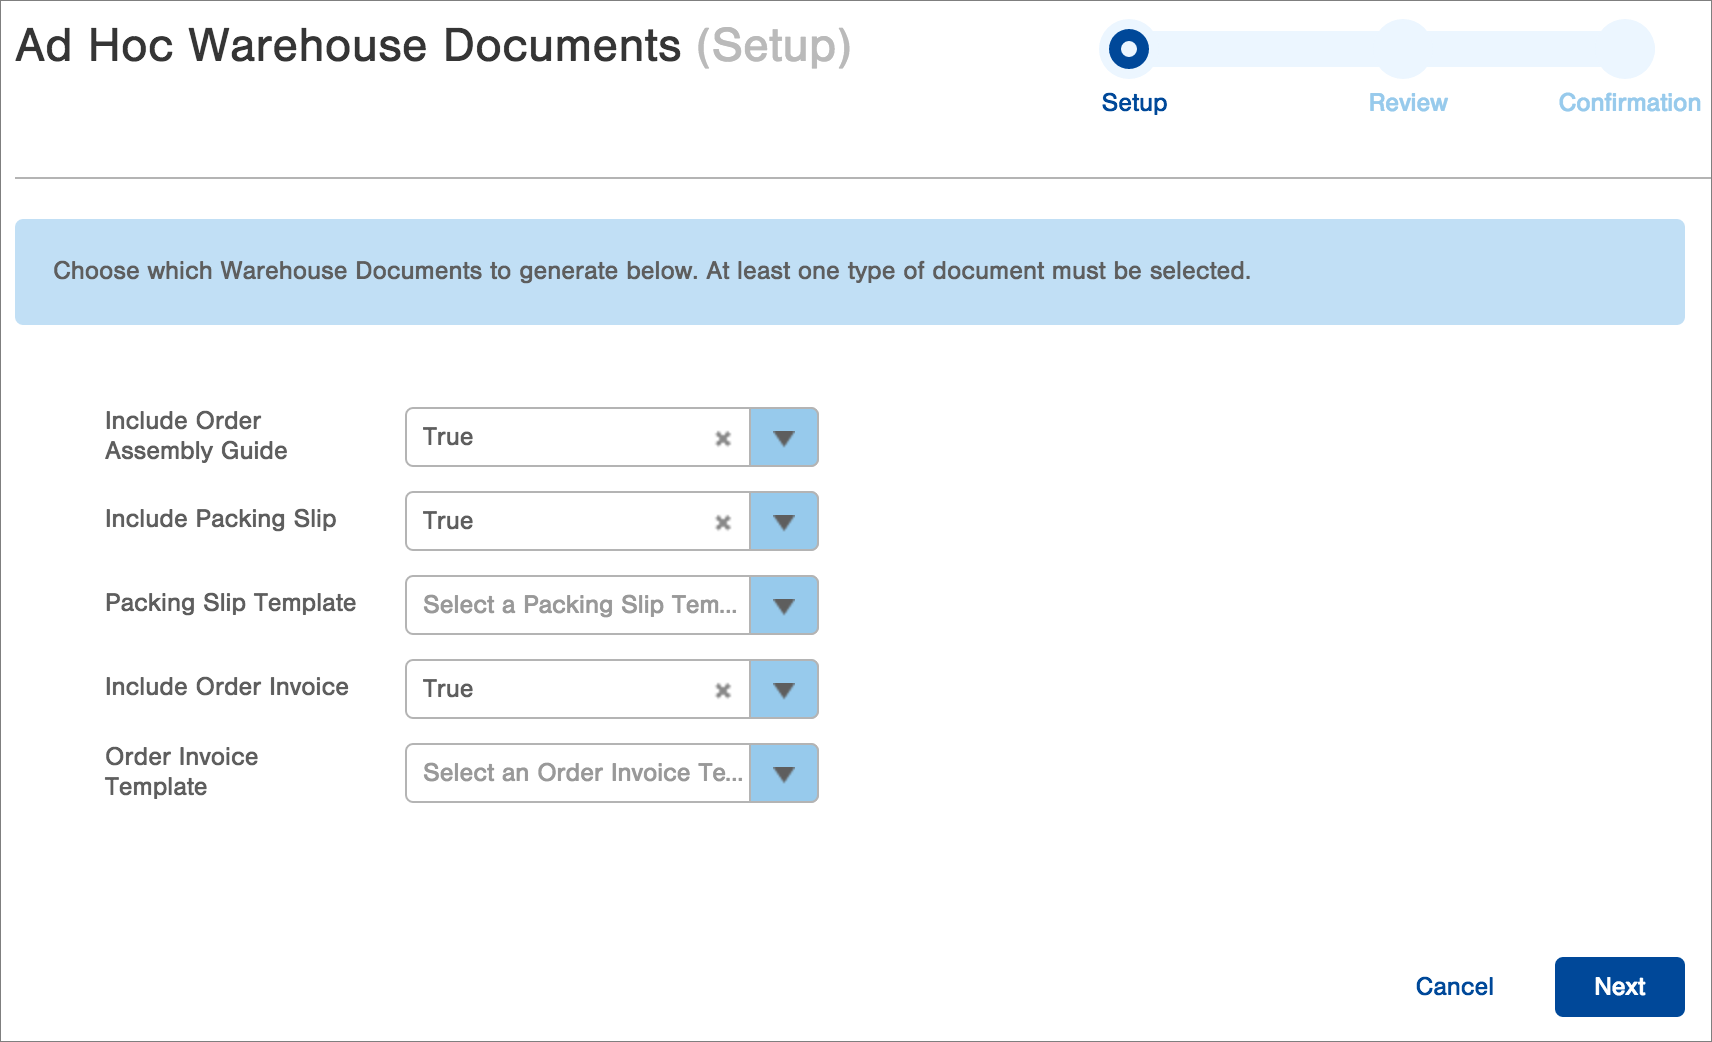 Warehouse documents can be generated from templates and printed automatically